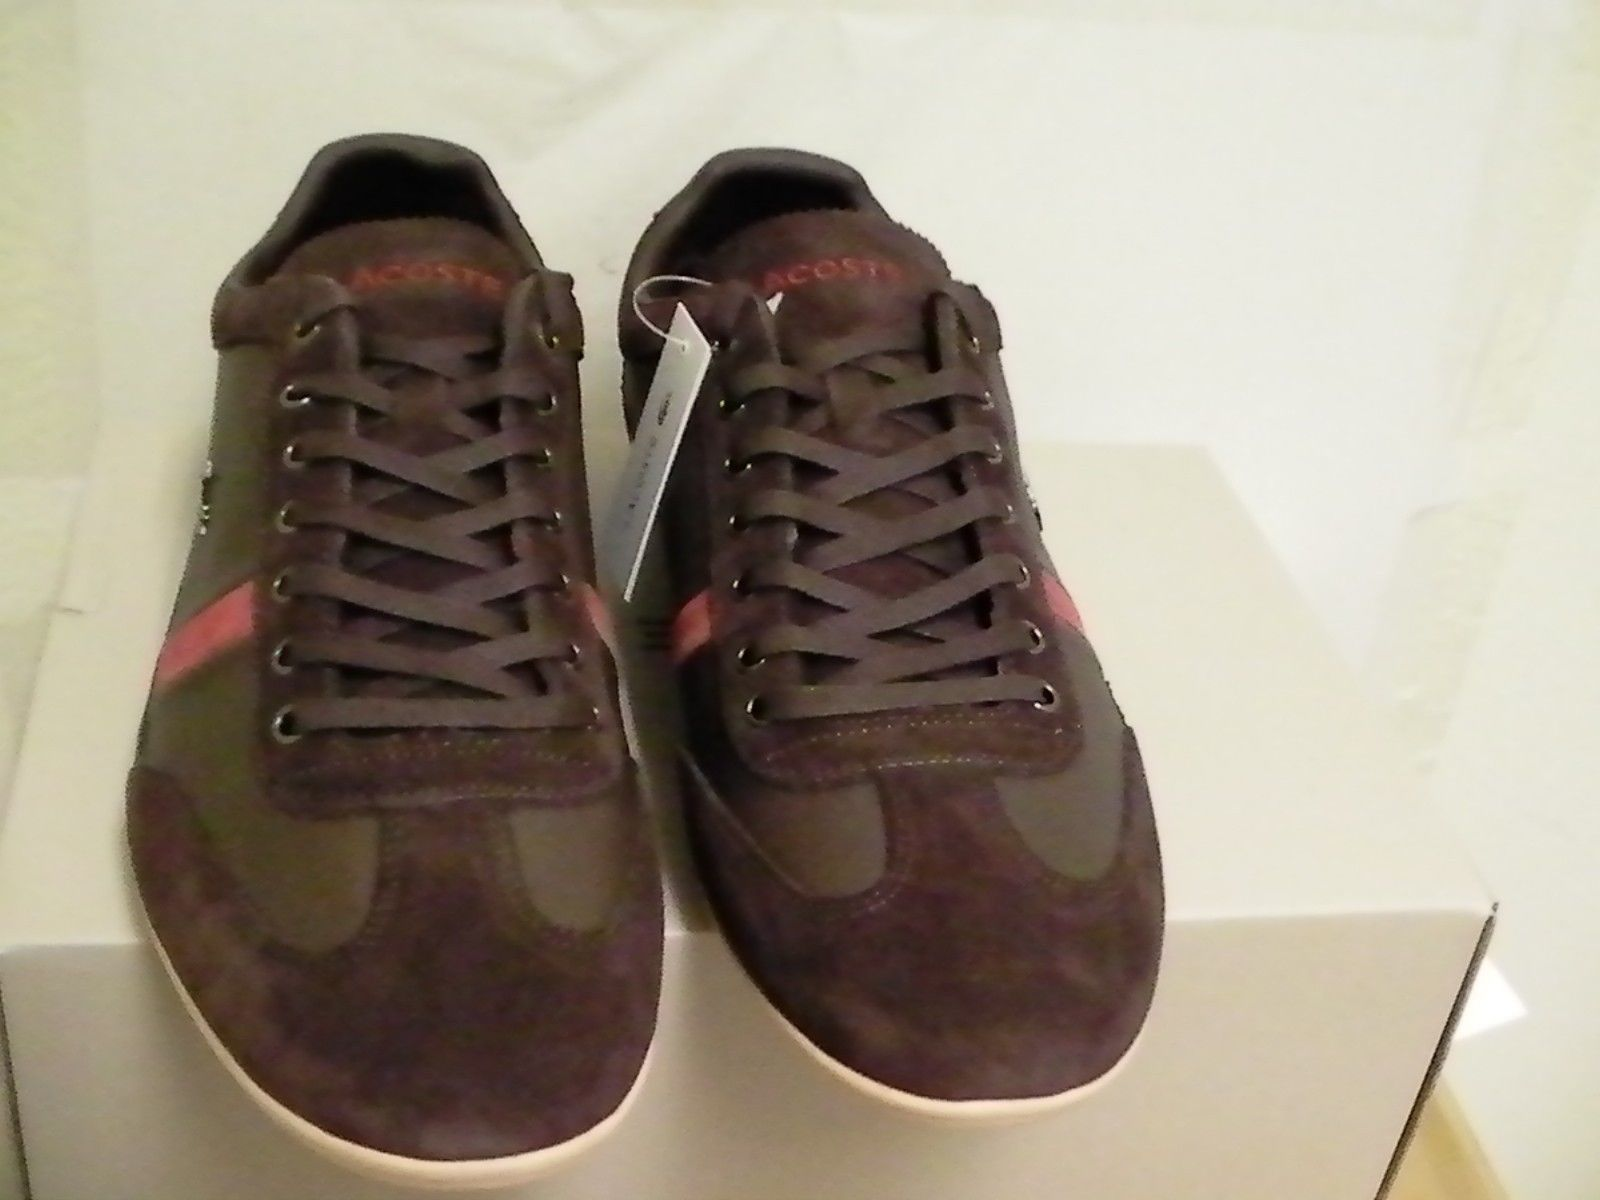 afc3b9d845302b Lacoste shoes misano 22 spm leather suede dark brown size 10 us